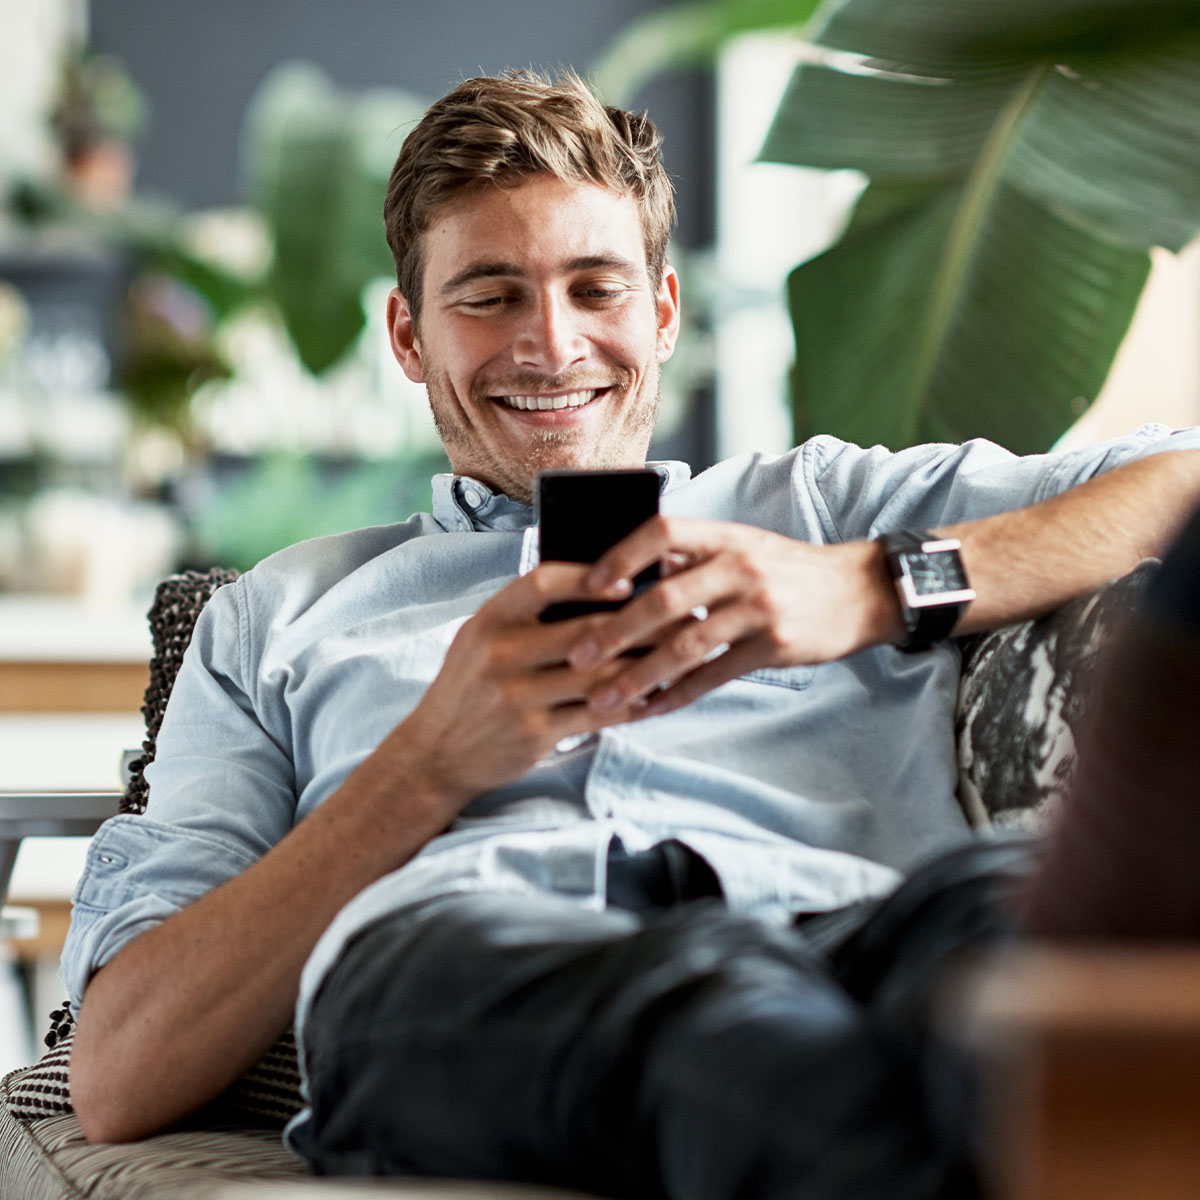 Man lounging dressed smart casual on a couch on his phone and smiling